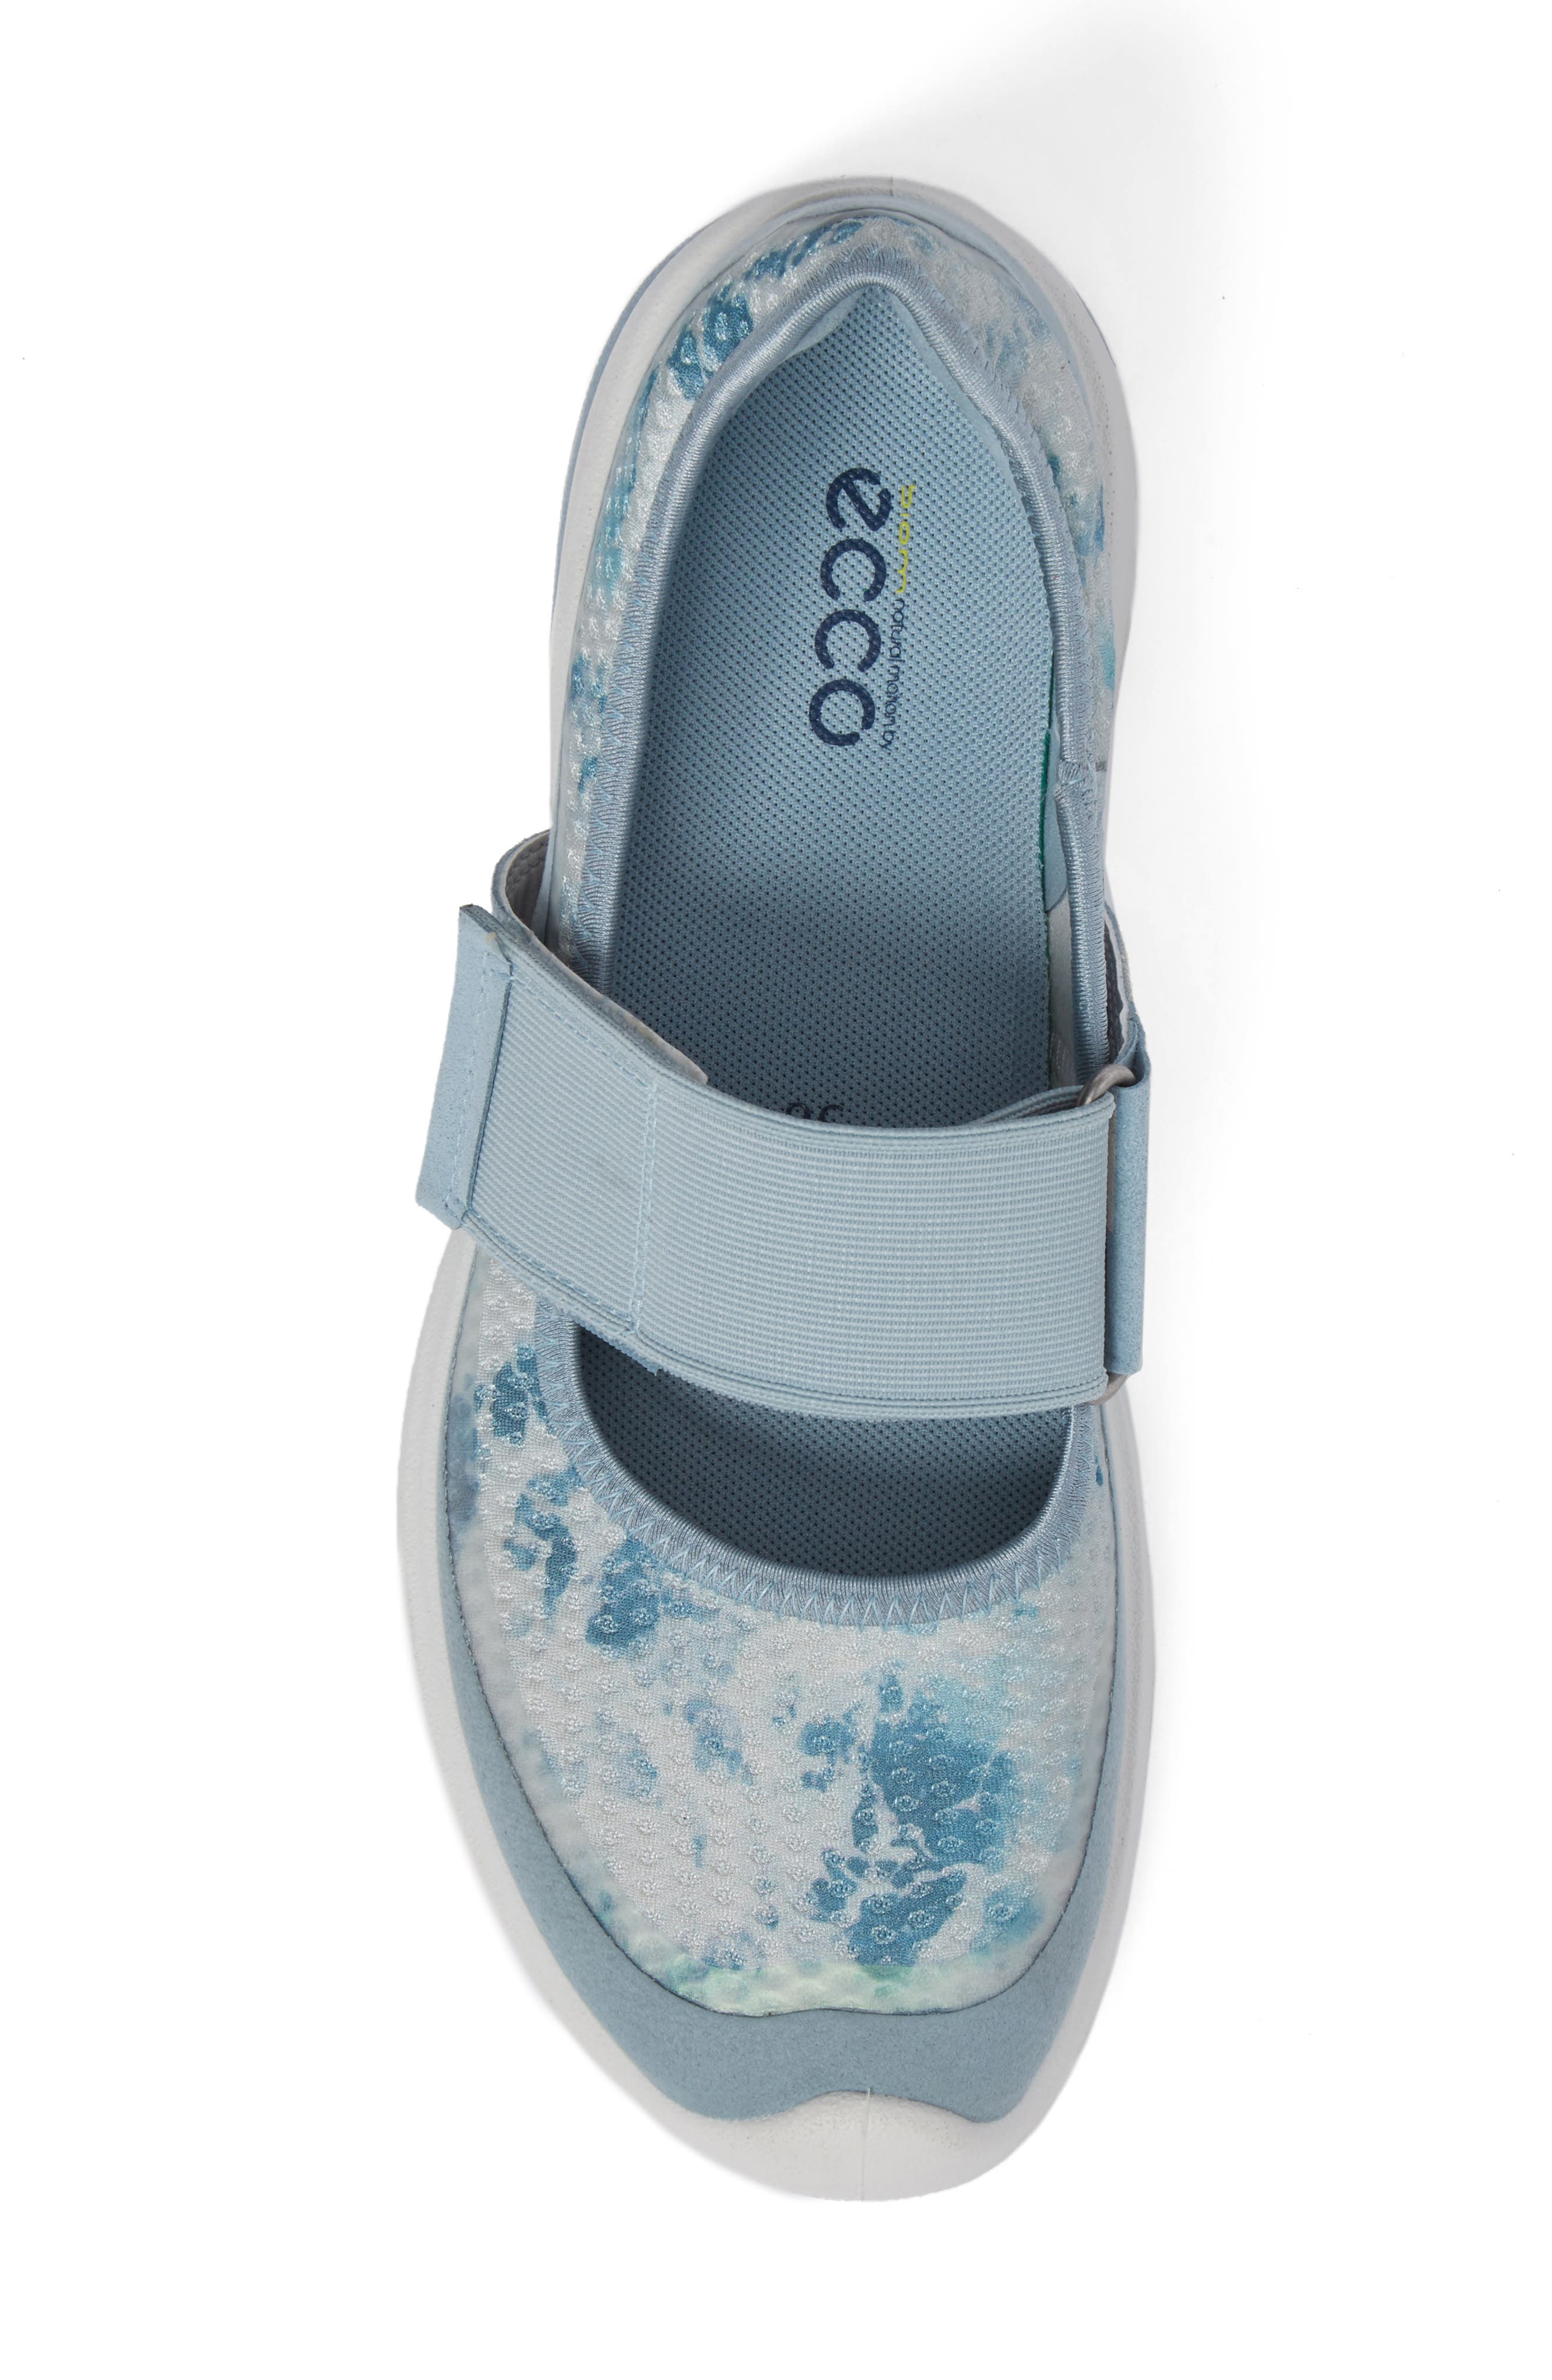 BIOM Amrap Mary Jane Band Flat,                             Alternate thumbnail 5, color,                             Arona/ Biscaya Fabric